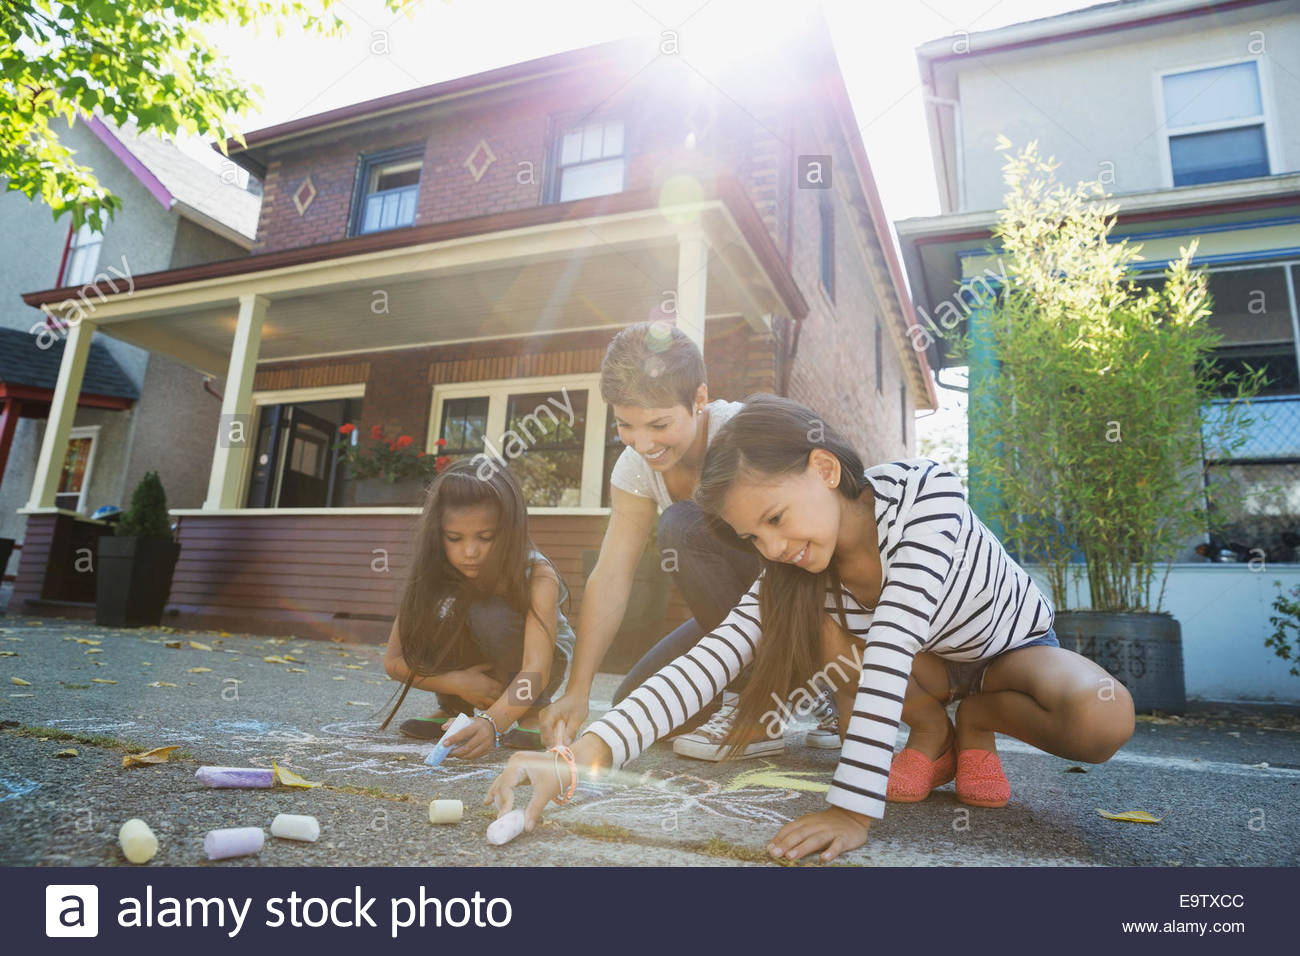 Mother and daughters drawing with sidewalk chalk - Stock Image